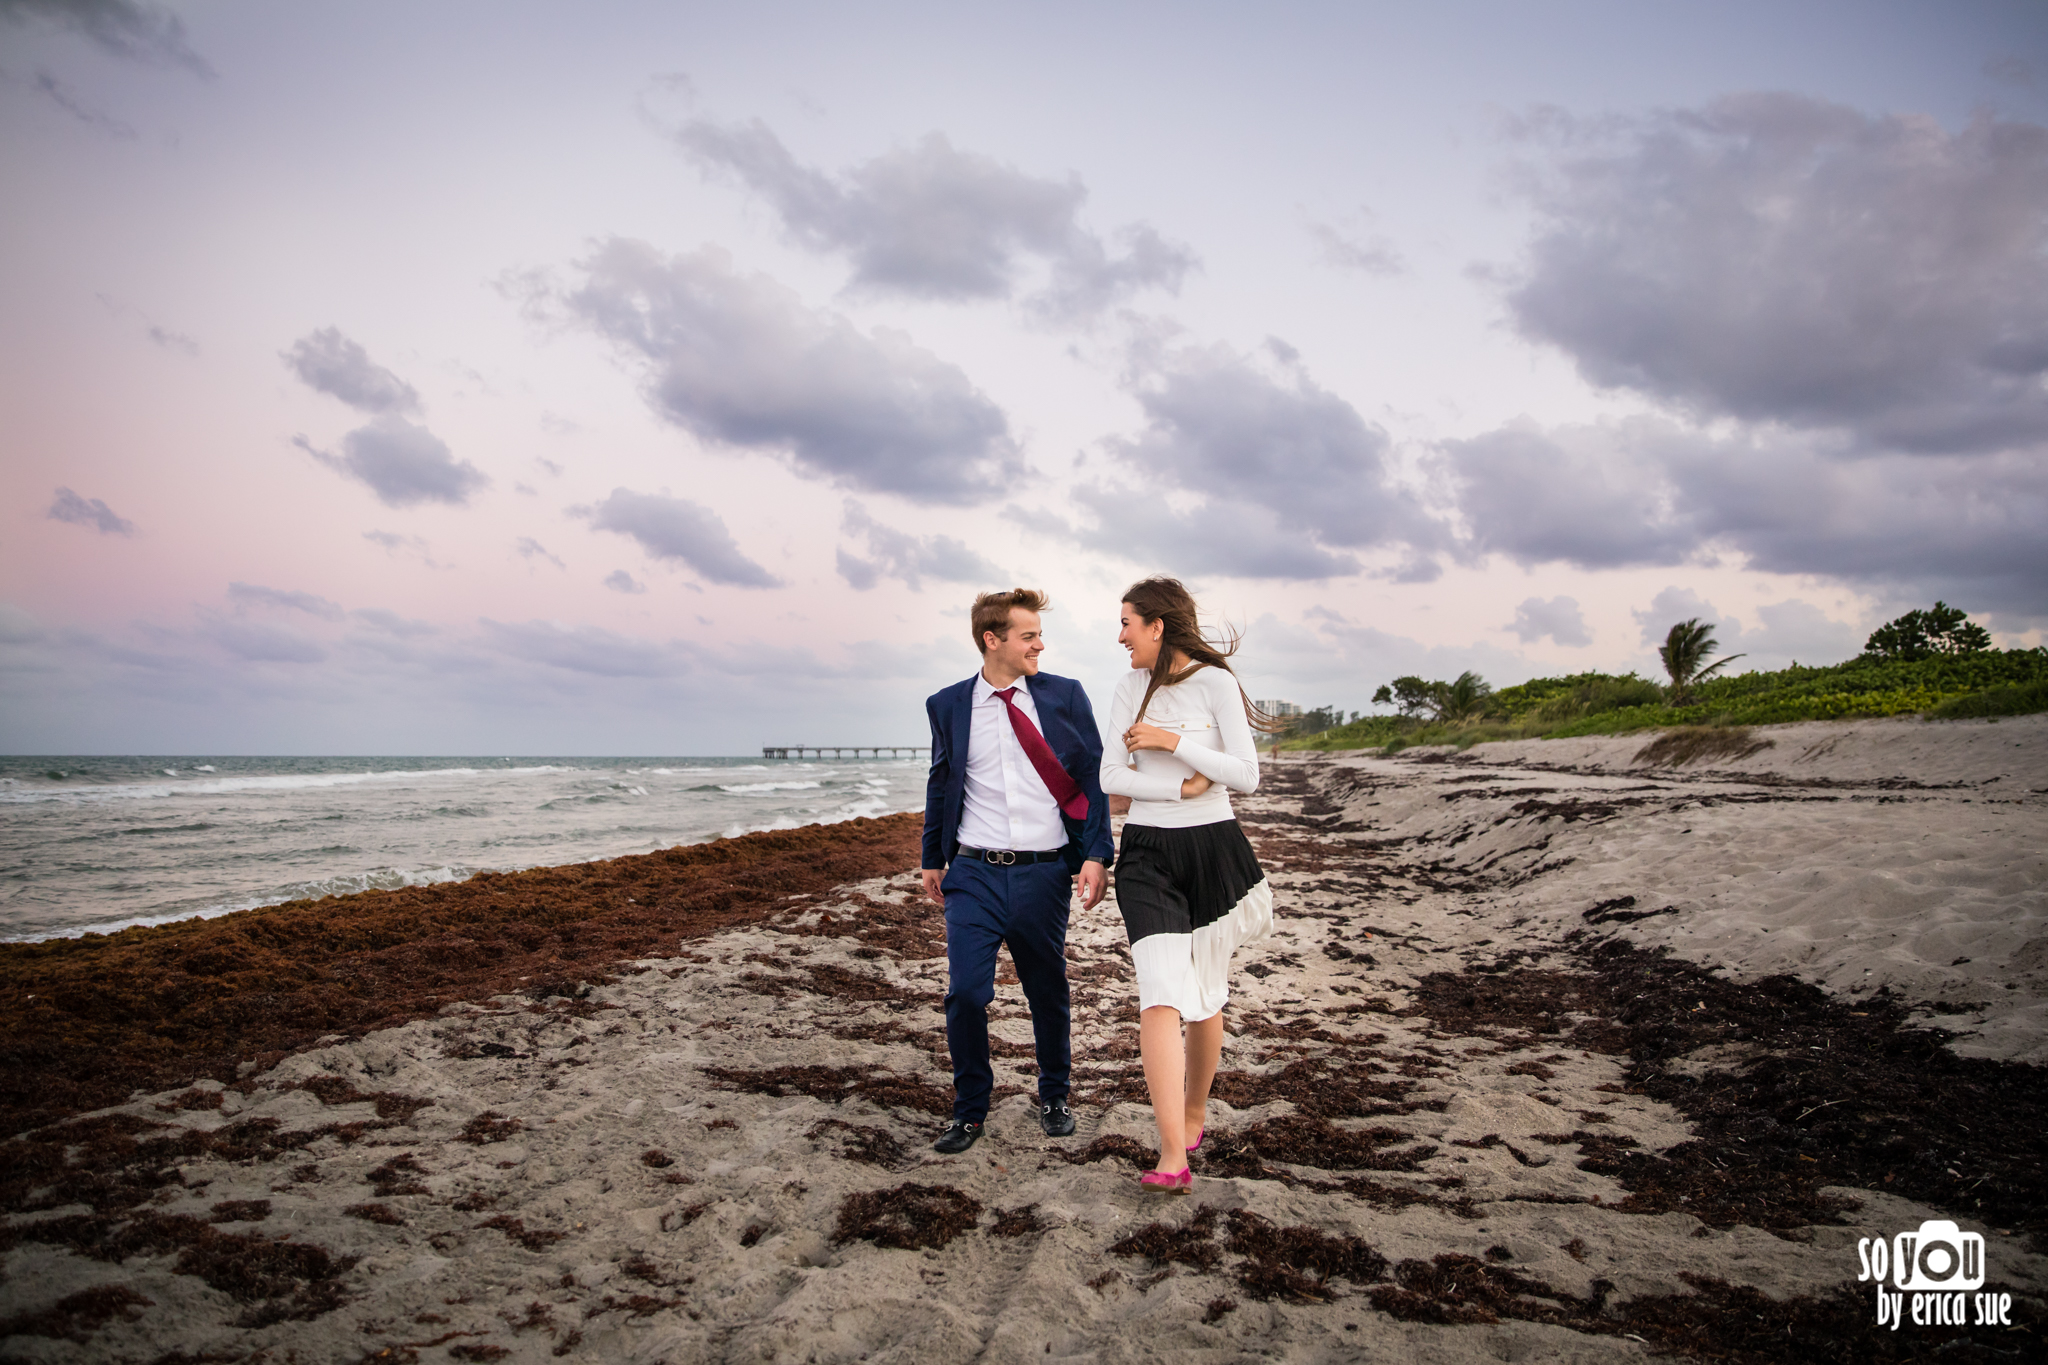 so-you-by-erica-sue-hollywood-fl-photographer-beach-engagement-flowers-candles-5066.jpg